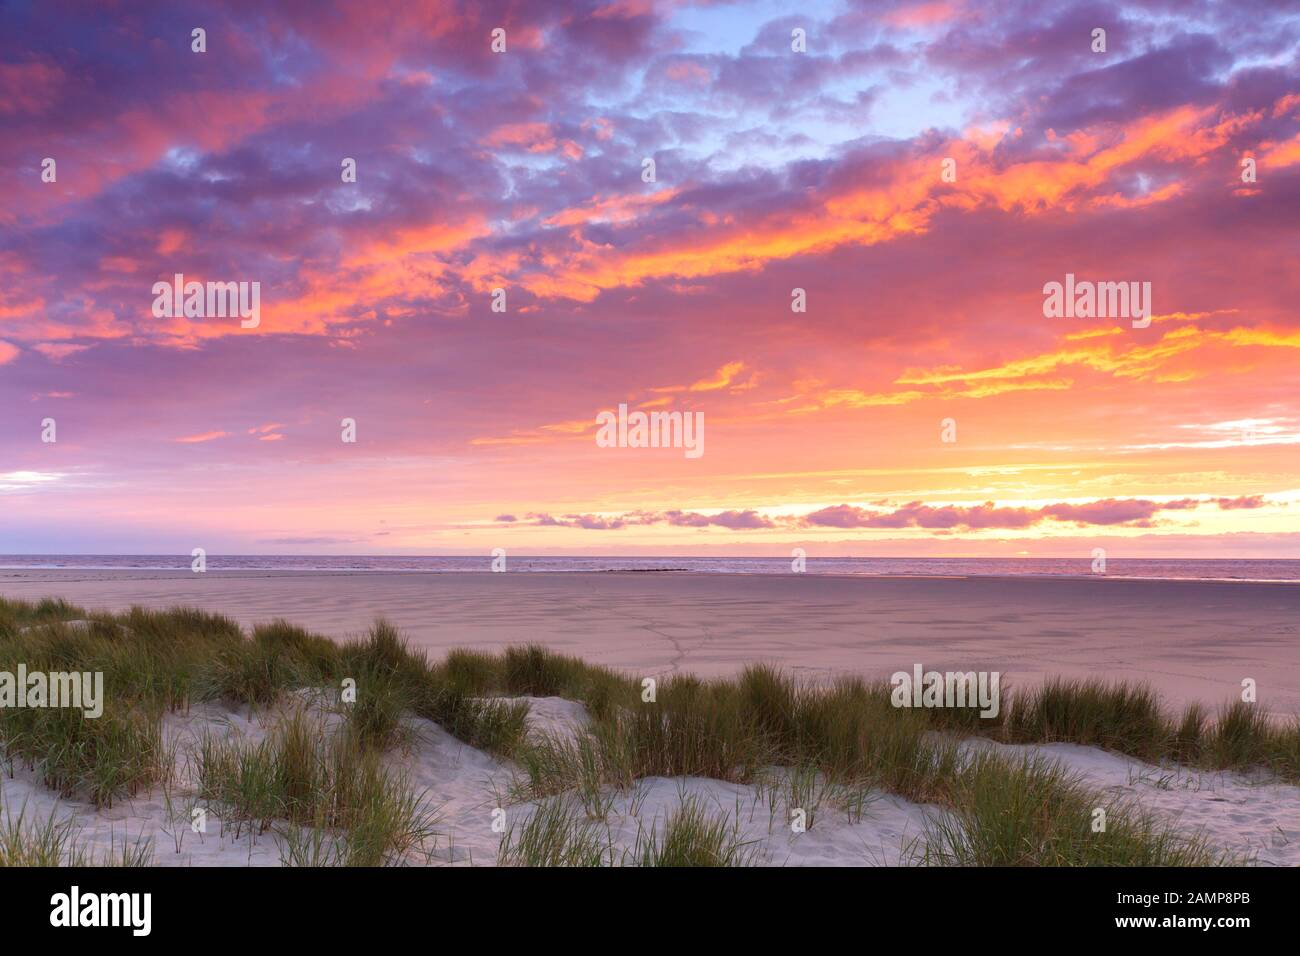 Beach and marram grass / beachgrass (Ammophila arenaria) in the dunes on Texel at sunset, West Frisian Island in the Wadden Sea, the Netherlands Stock Photo